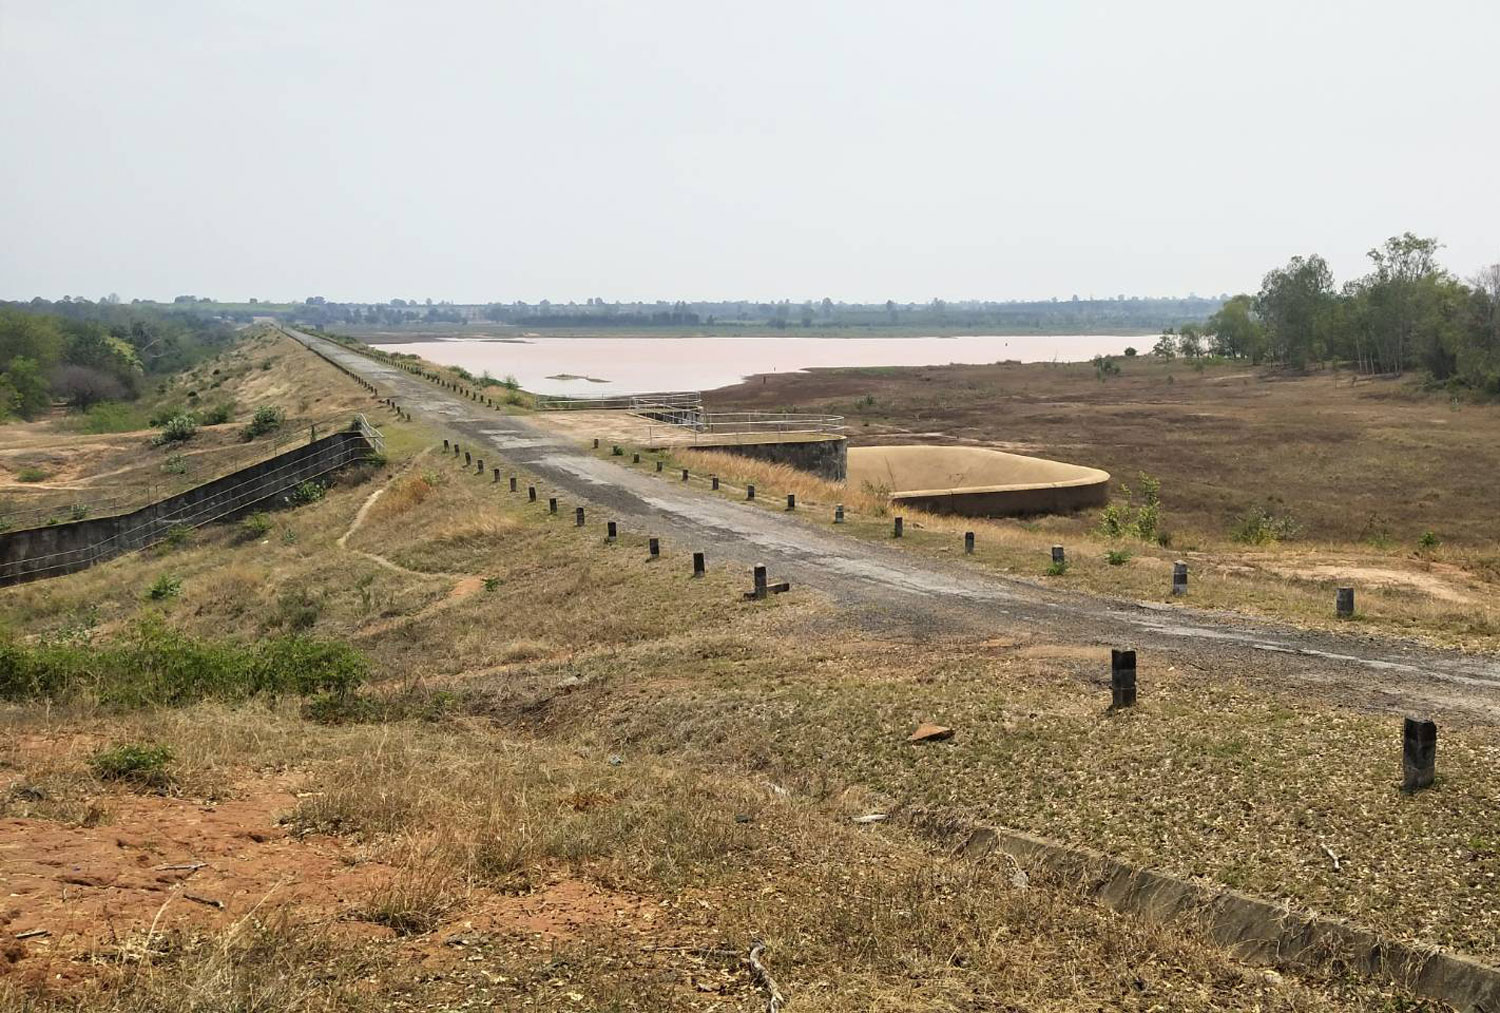 Huay Bong reservoir in Nakhon Ratchasima's Chum Phuang district is rapidly drying up and now holds only 1% of its intended capacity. (Photo: Prasit Tangprasert)